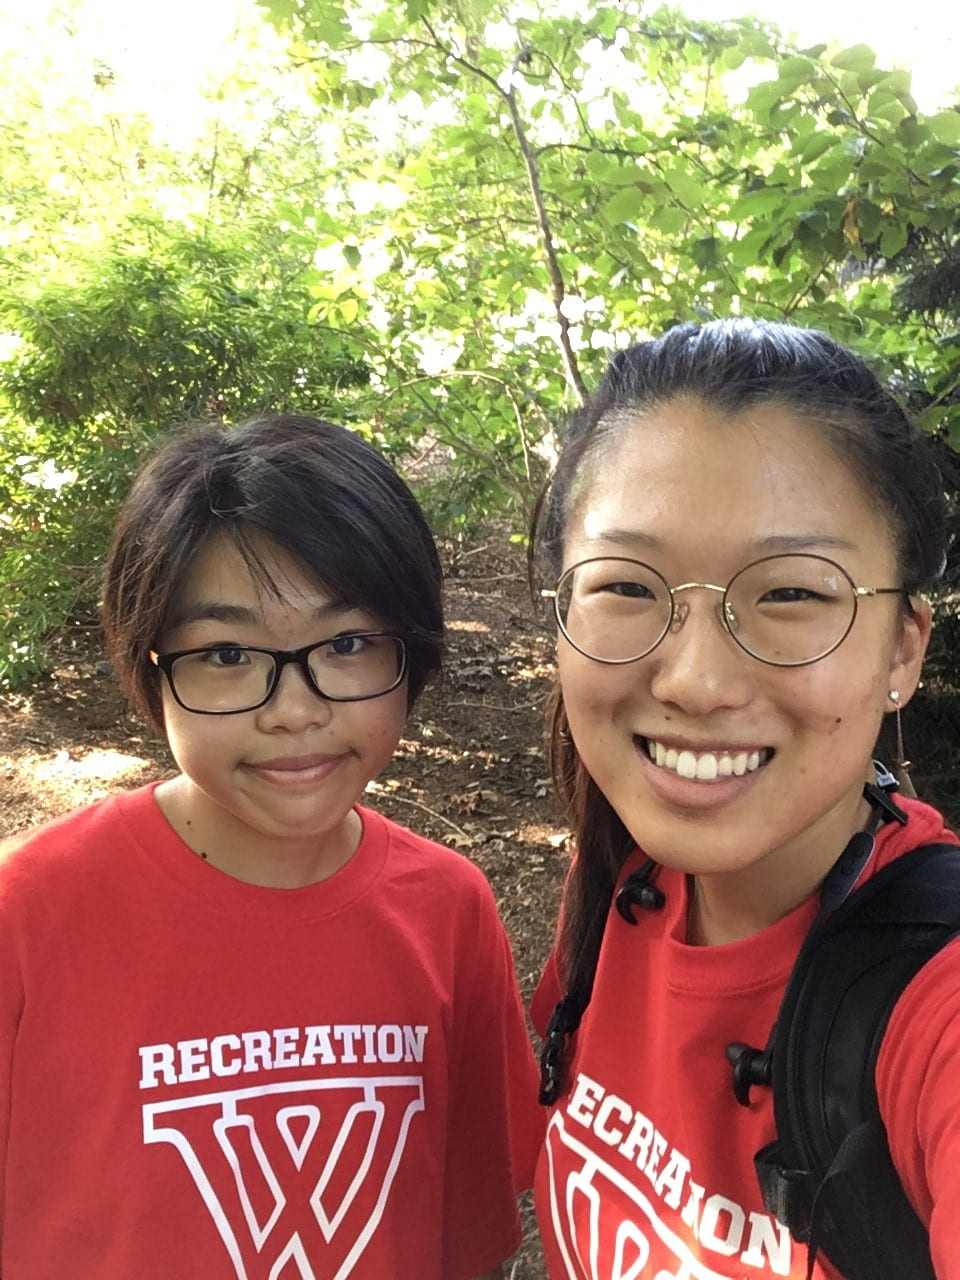 Emily with her friend and exchange student from Smith, both wearing red shirts with a large W